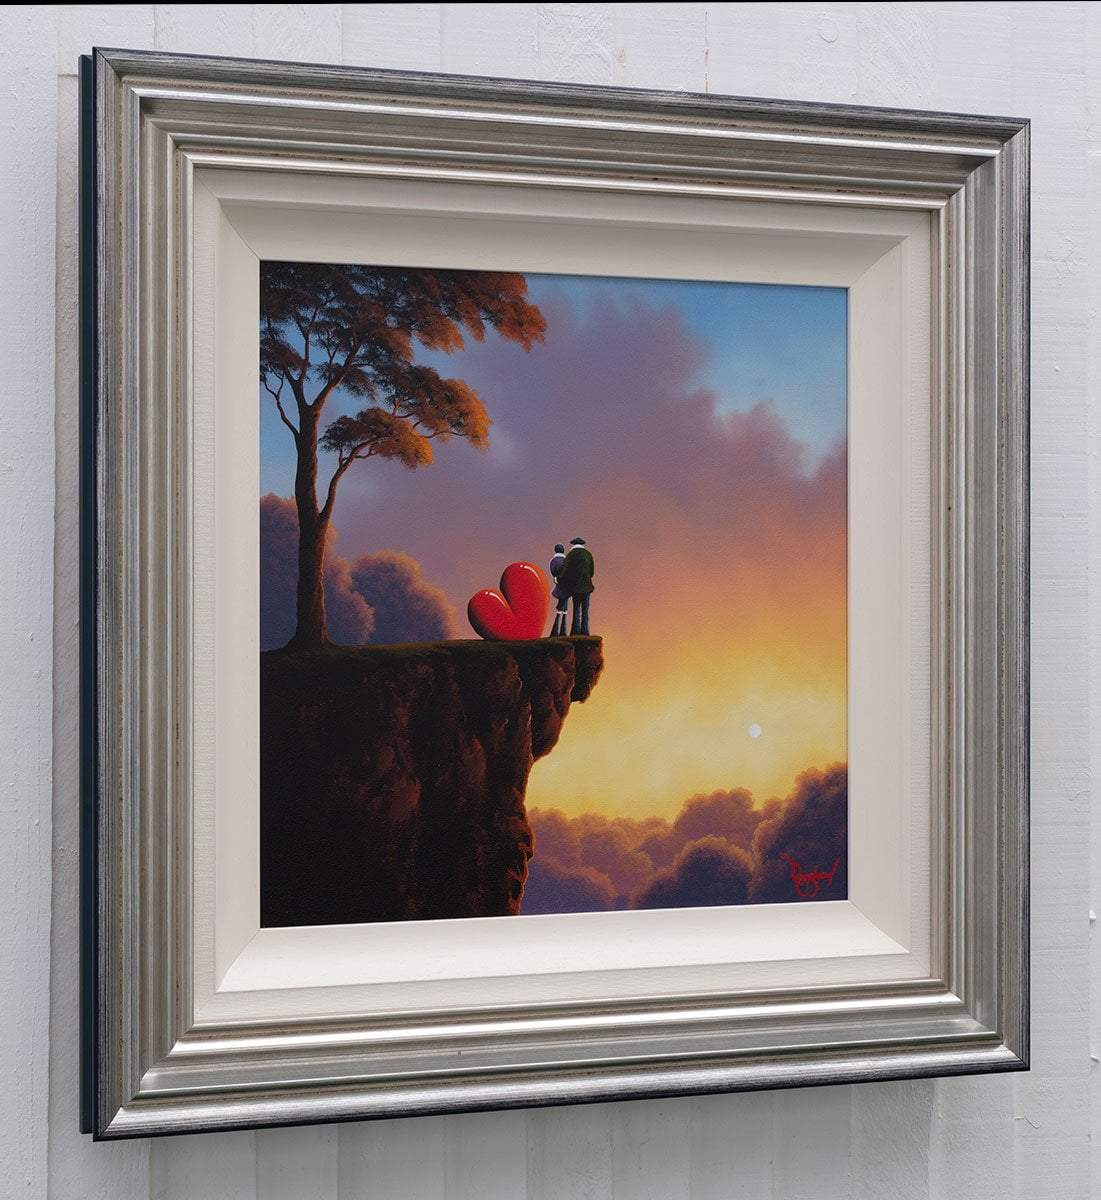 Above The Clouds - Original David Renshaw Framed